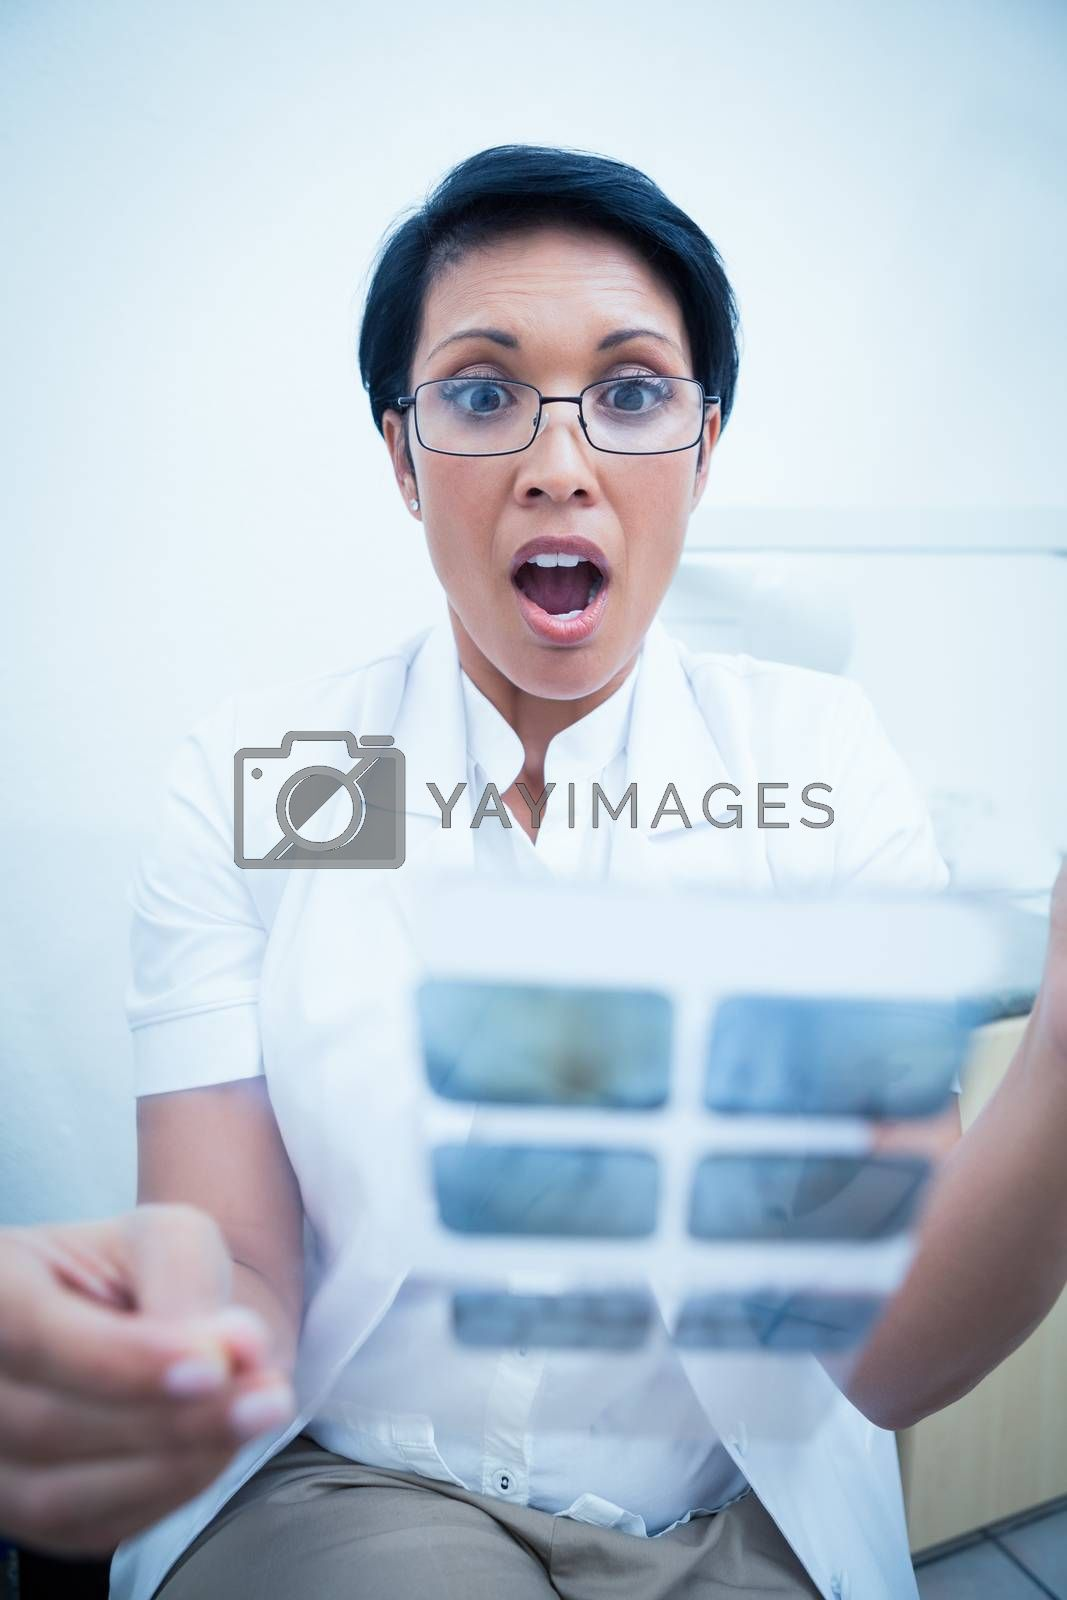 Shocked female dentist looking at x-ray